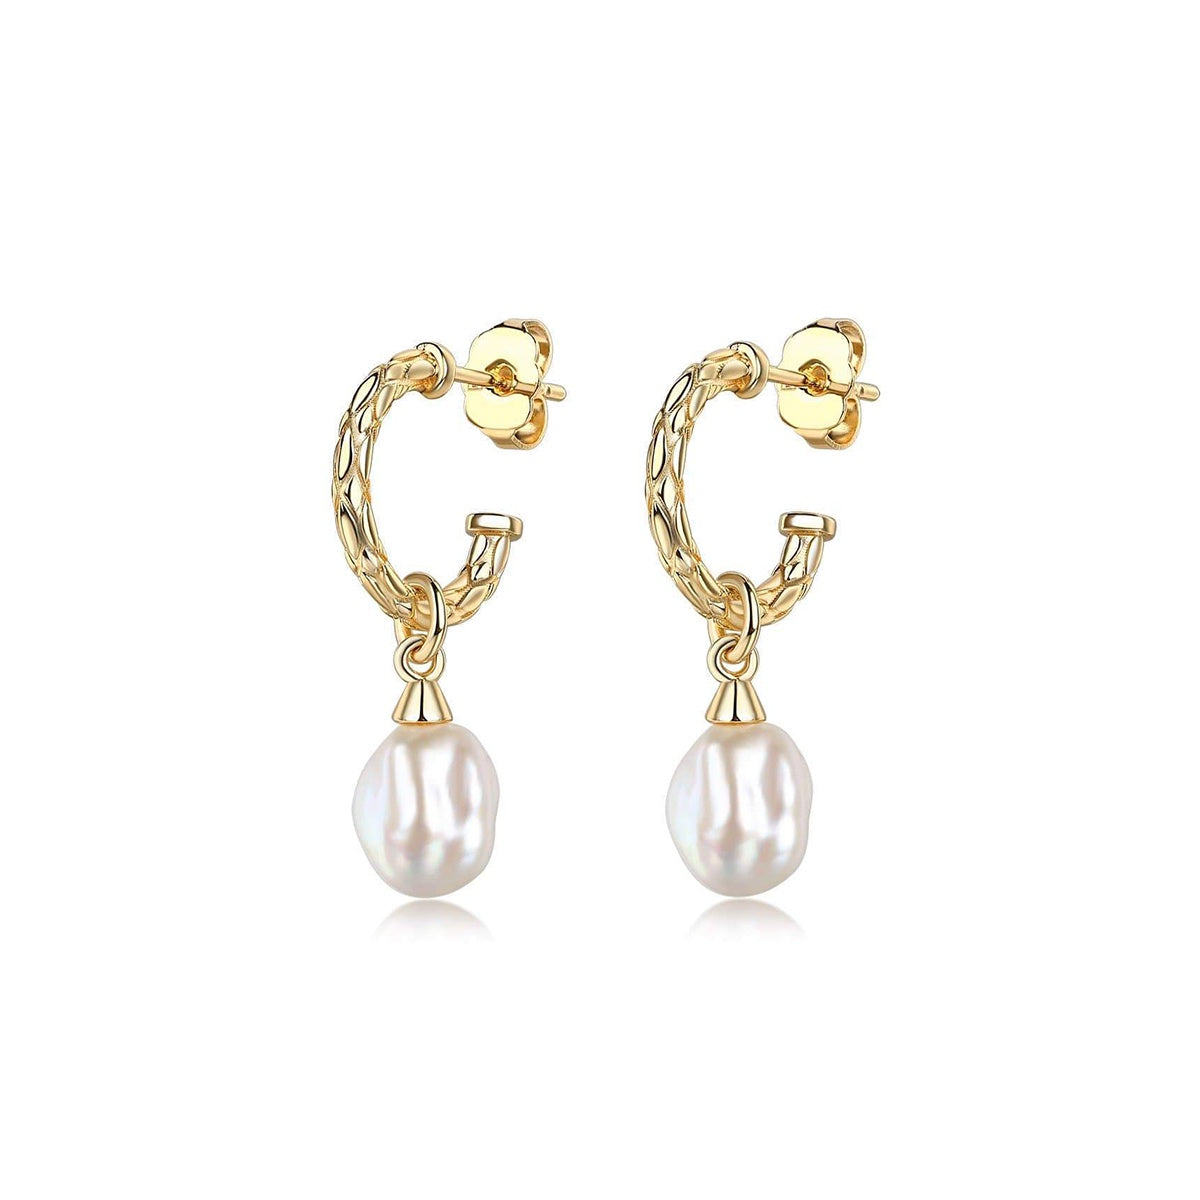 Lenny Pearl Charming Earrings